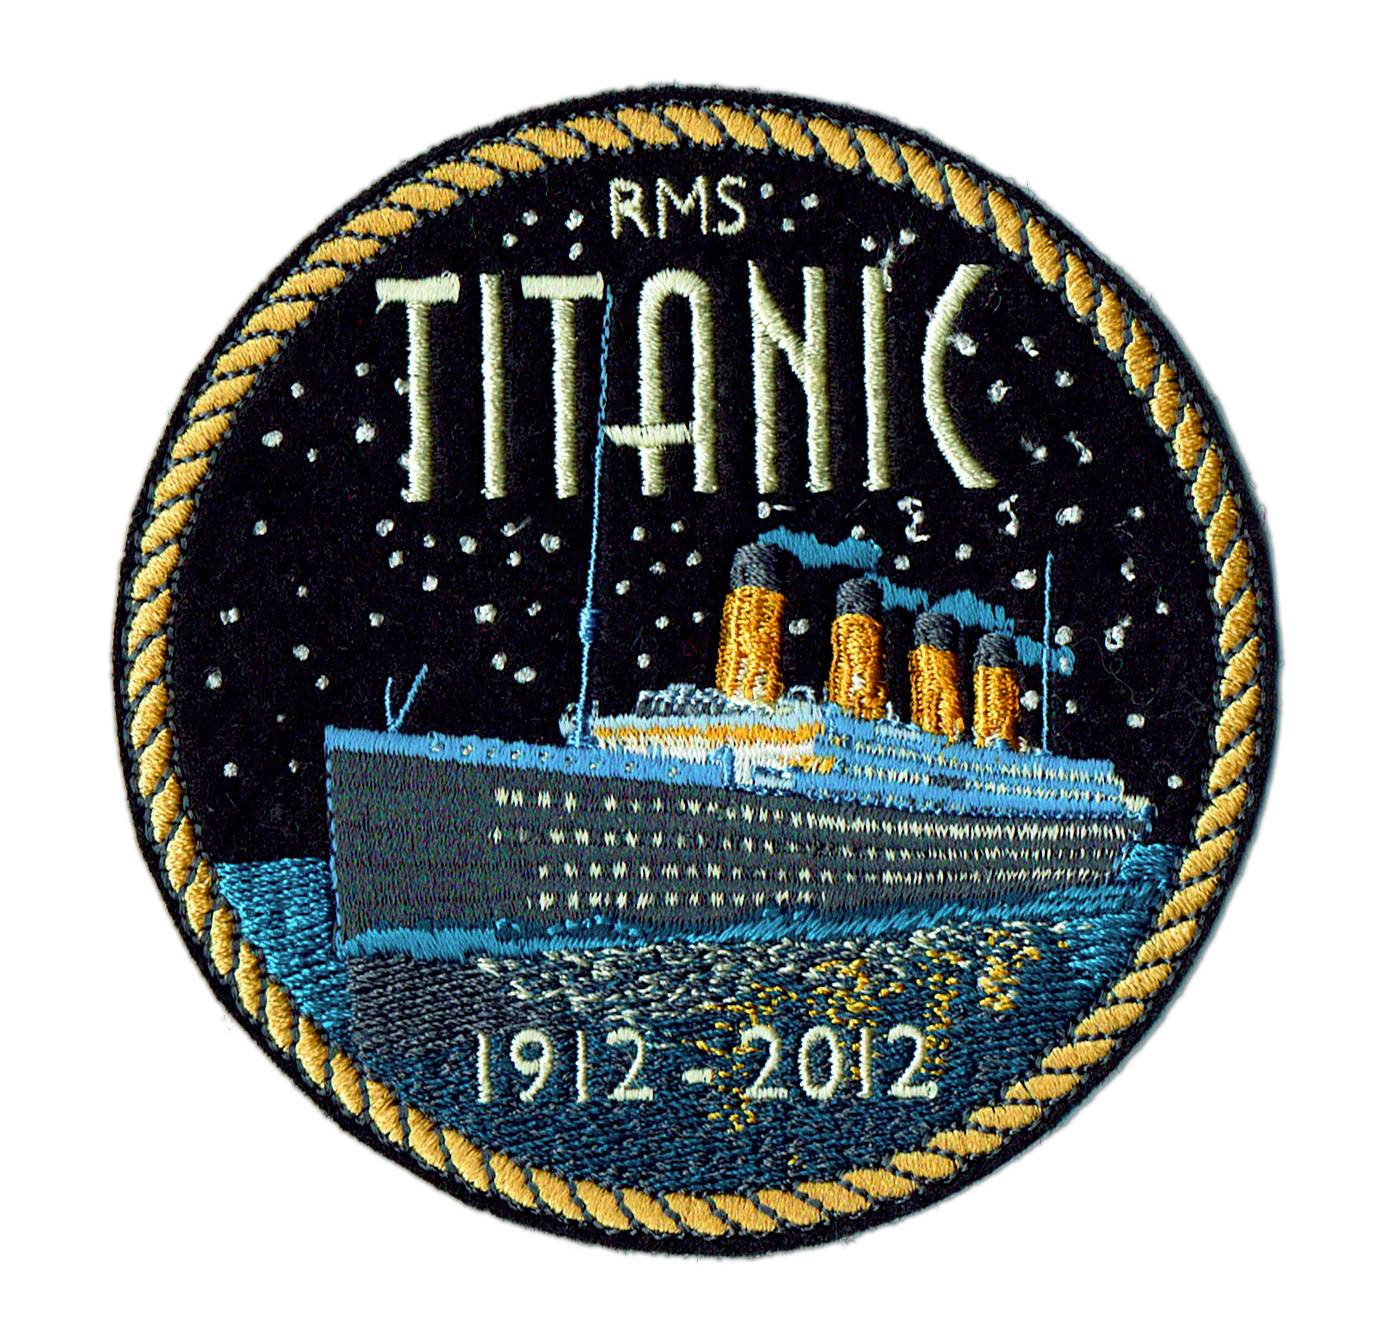 Lucreation Titanic patch